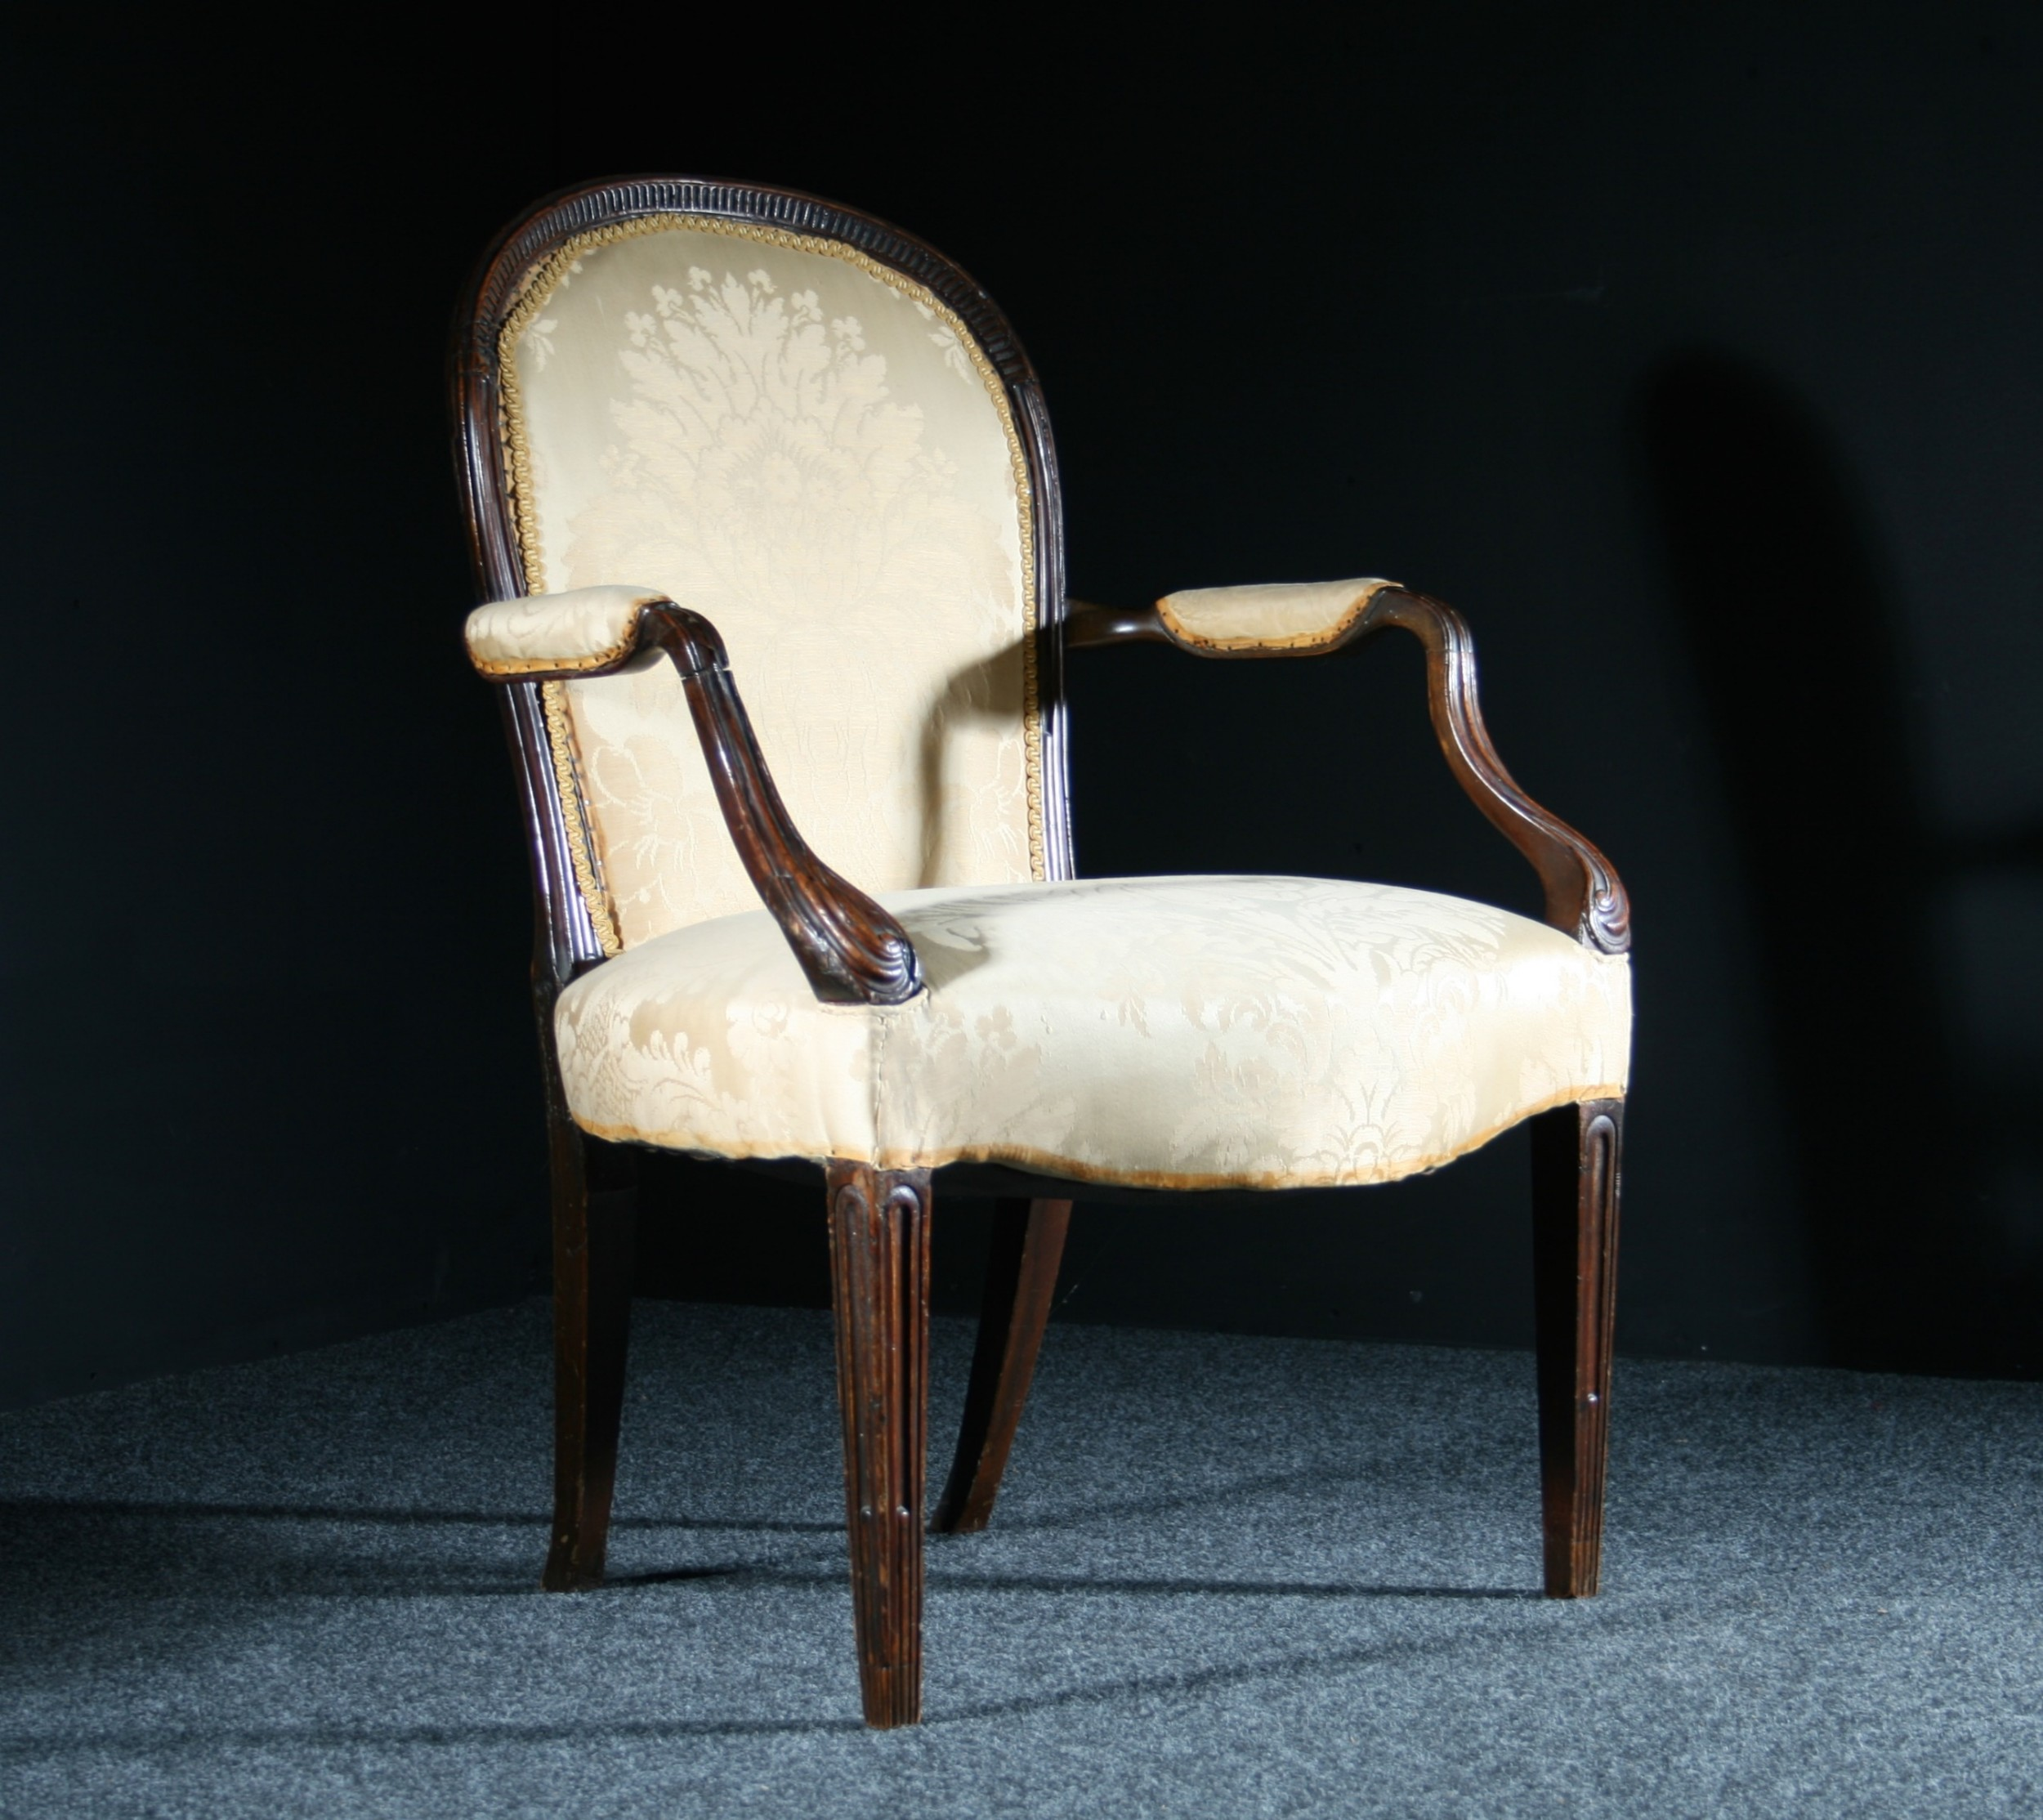 georgian armchair in mahogany from the 18th century